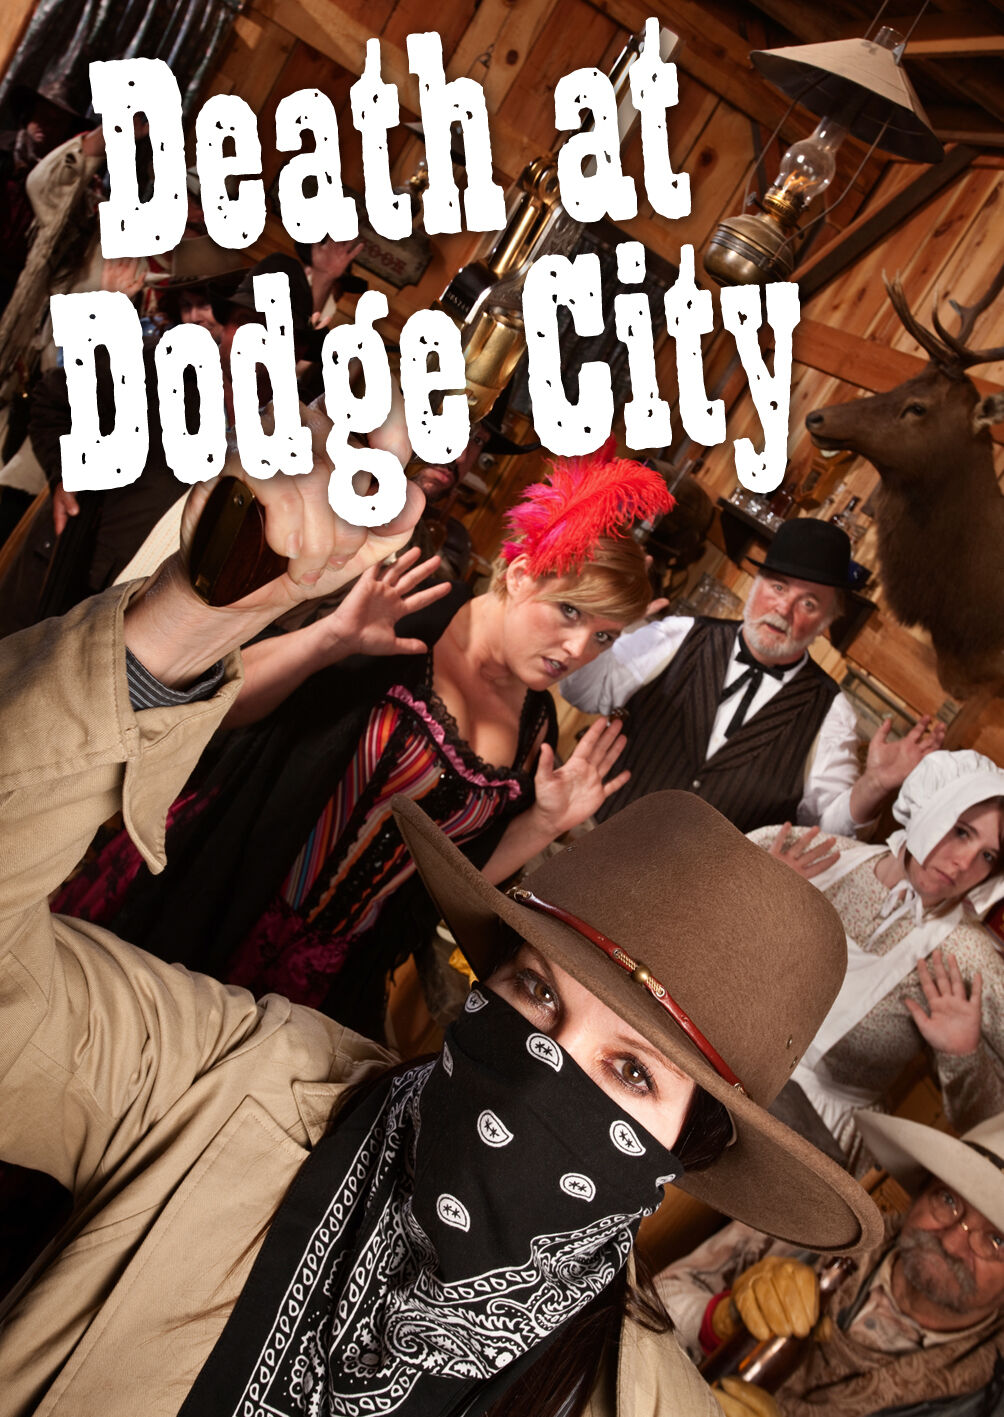 Death at Dodge City - 6, 8, 10, 12, 14, 16, 18, 20 player games